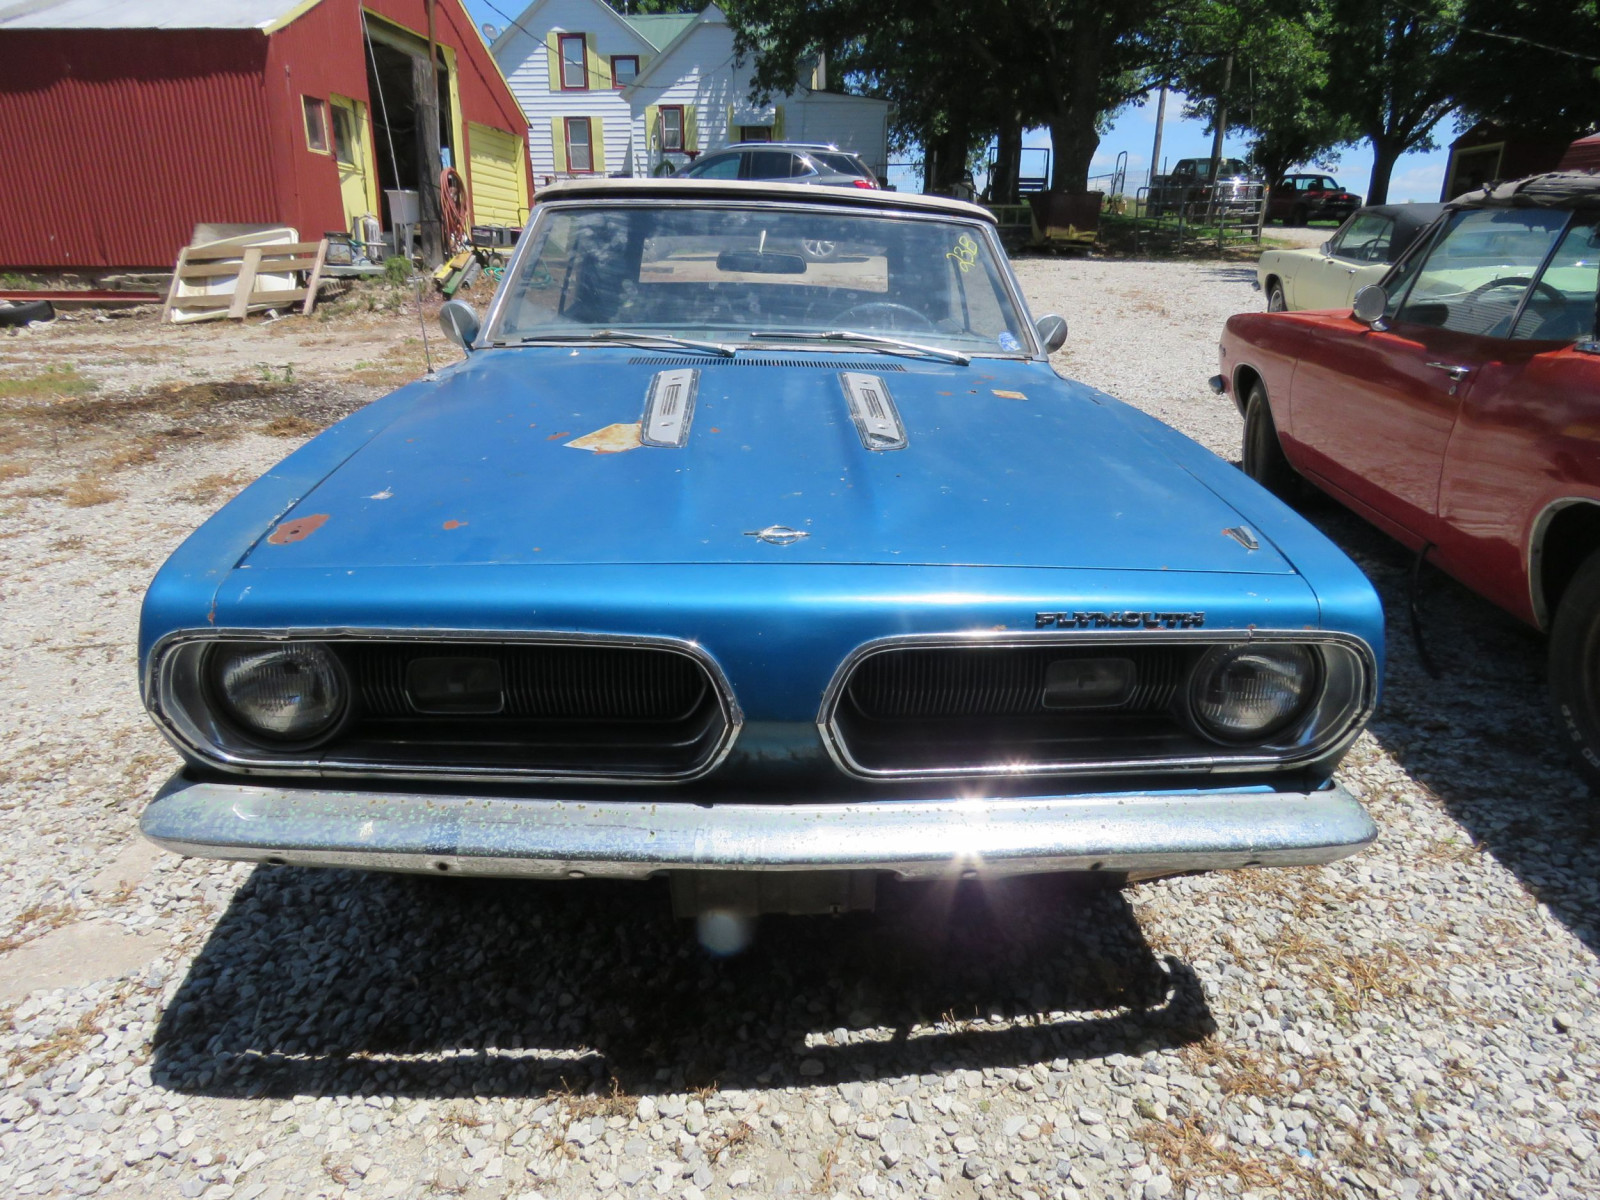 1968 Plymouth Barracuda Convertible - Image 2